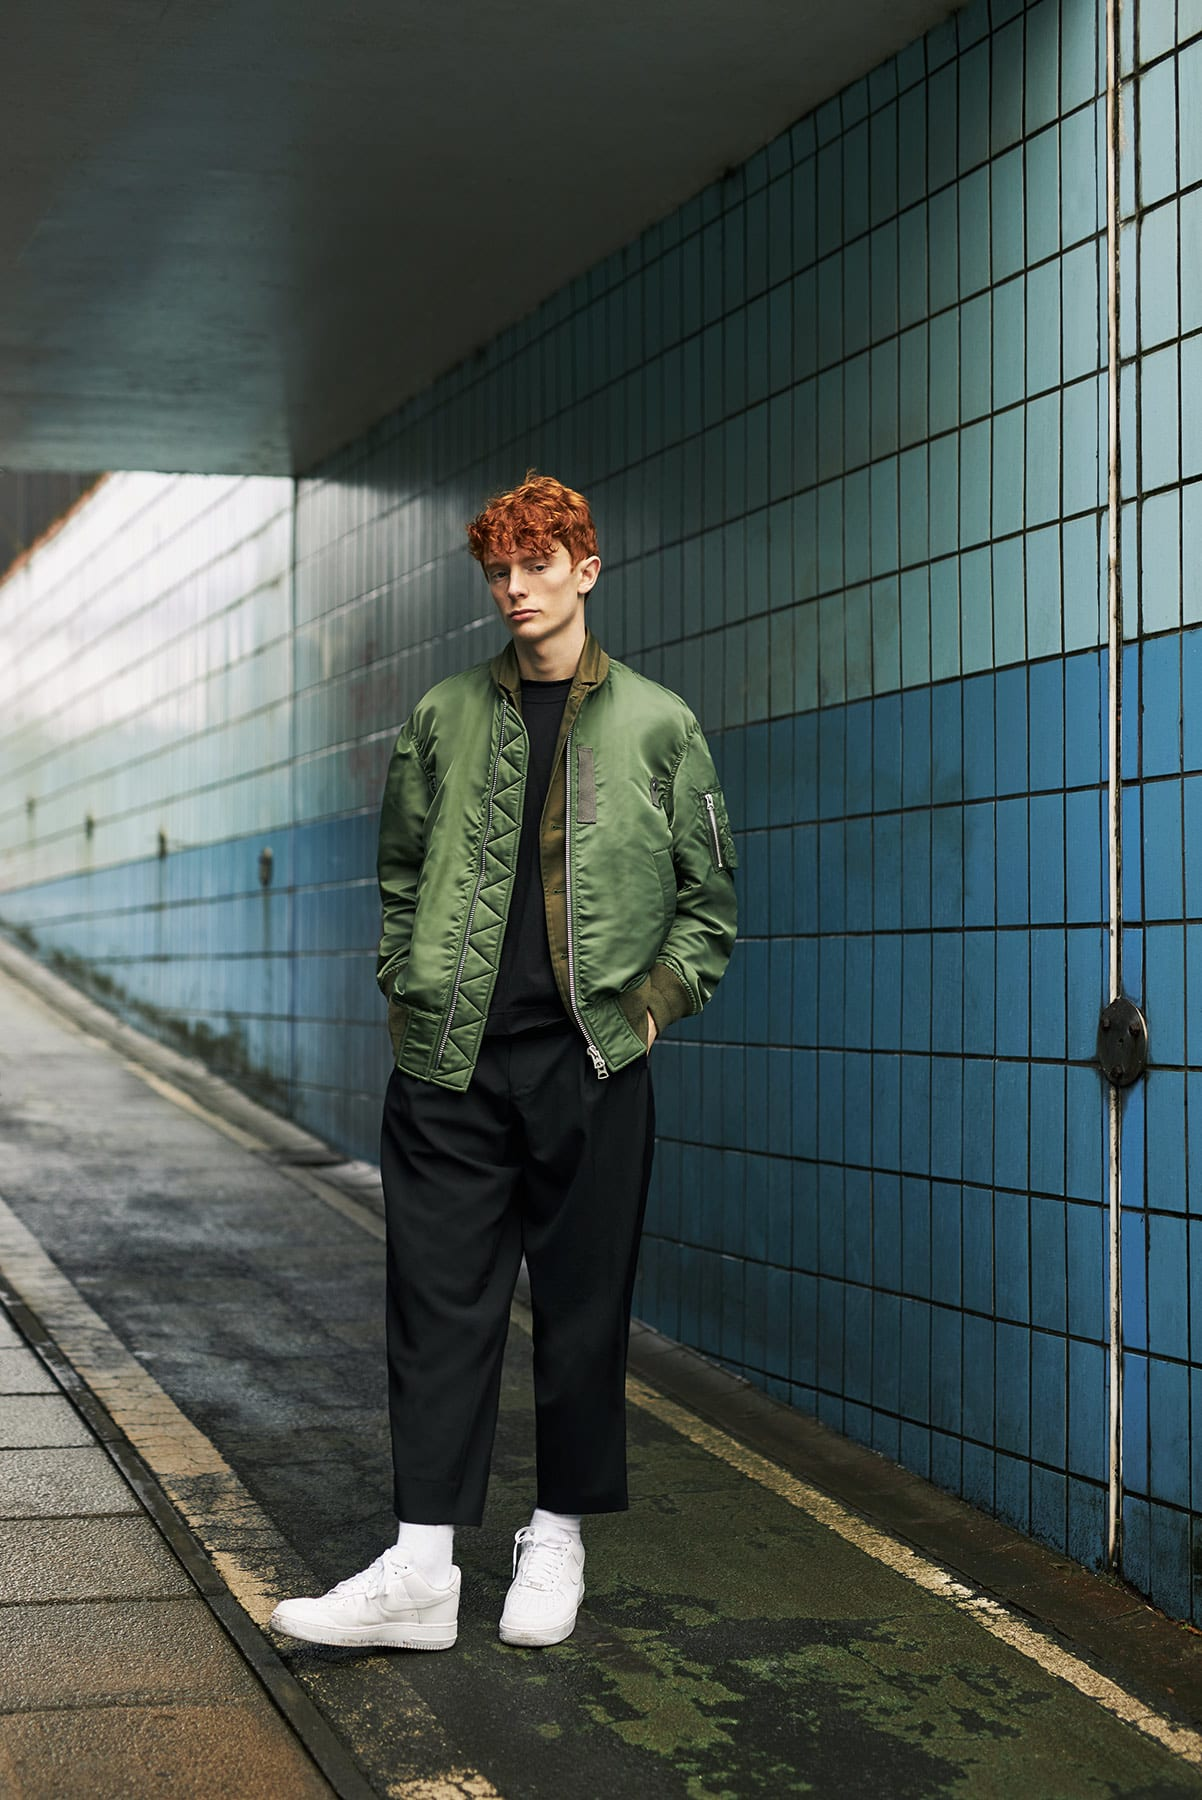 MA-1 Blouson for END.'s Sacai editorial